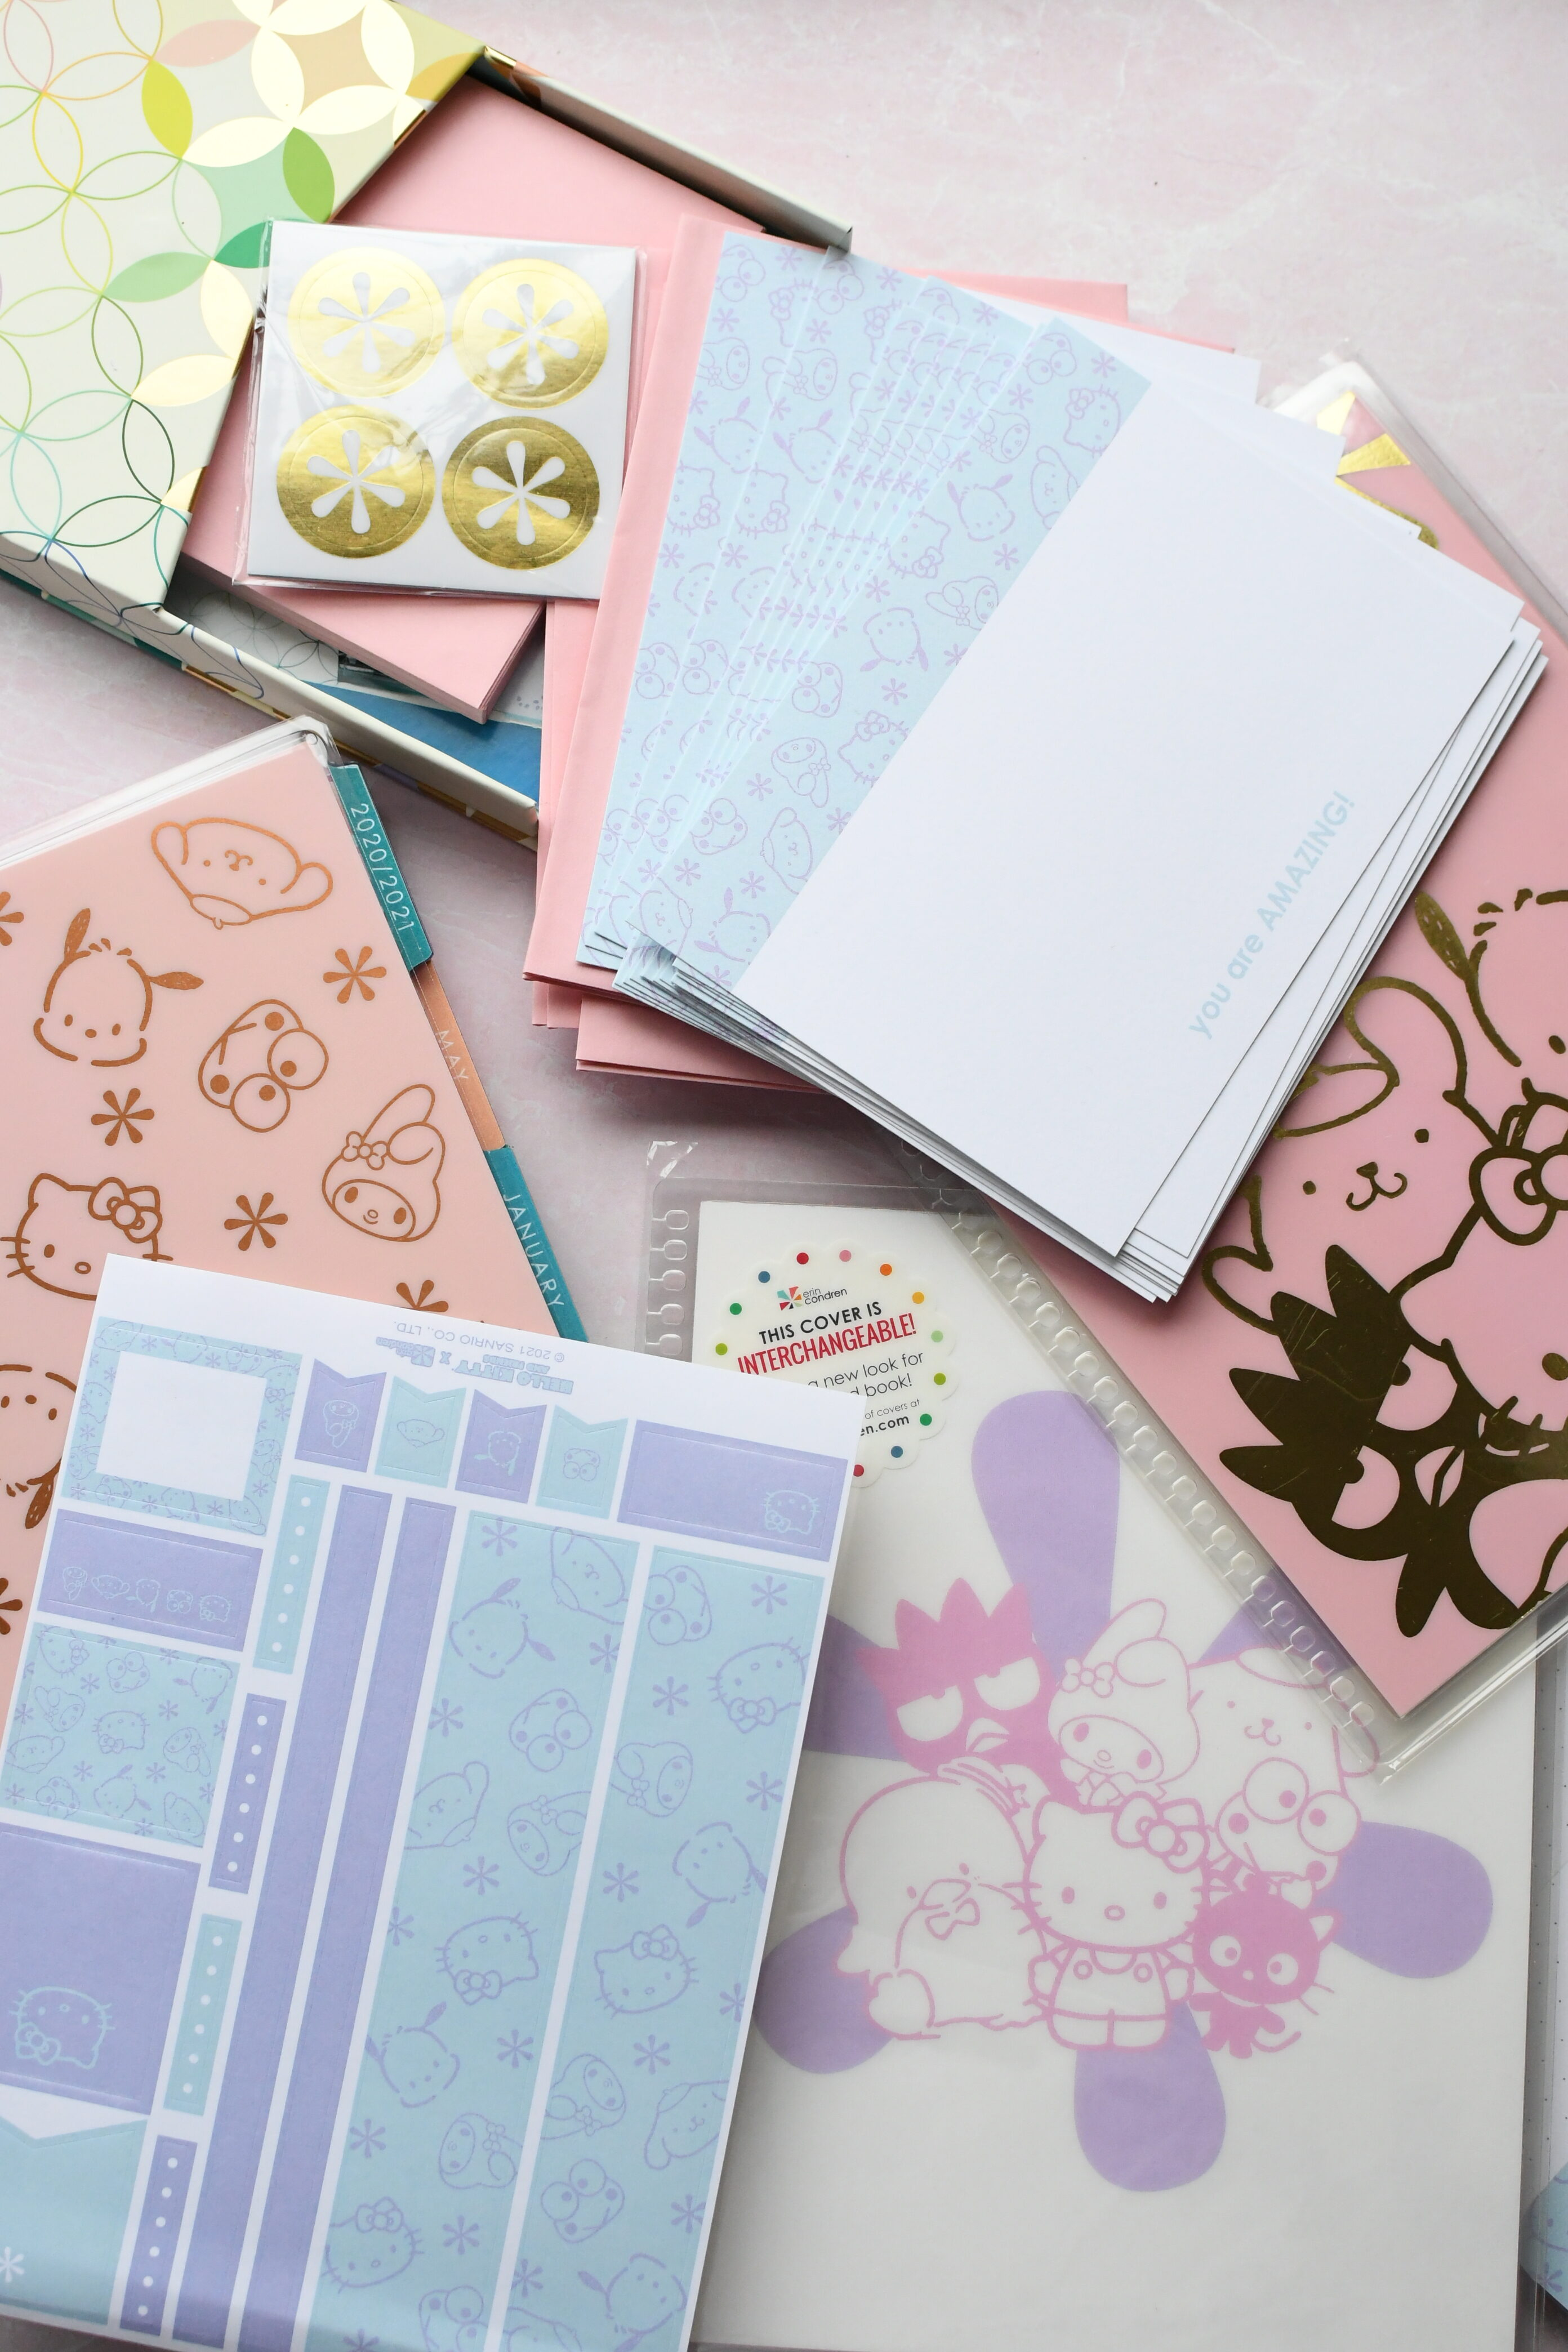 Erin Condrin Hello Kitty Collection by popular Monterey lifestyle blog, Haute Beauty Guide: image of a Hello Kitty planner collection.